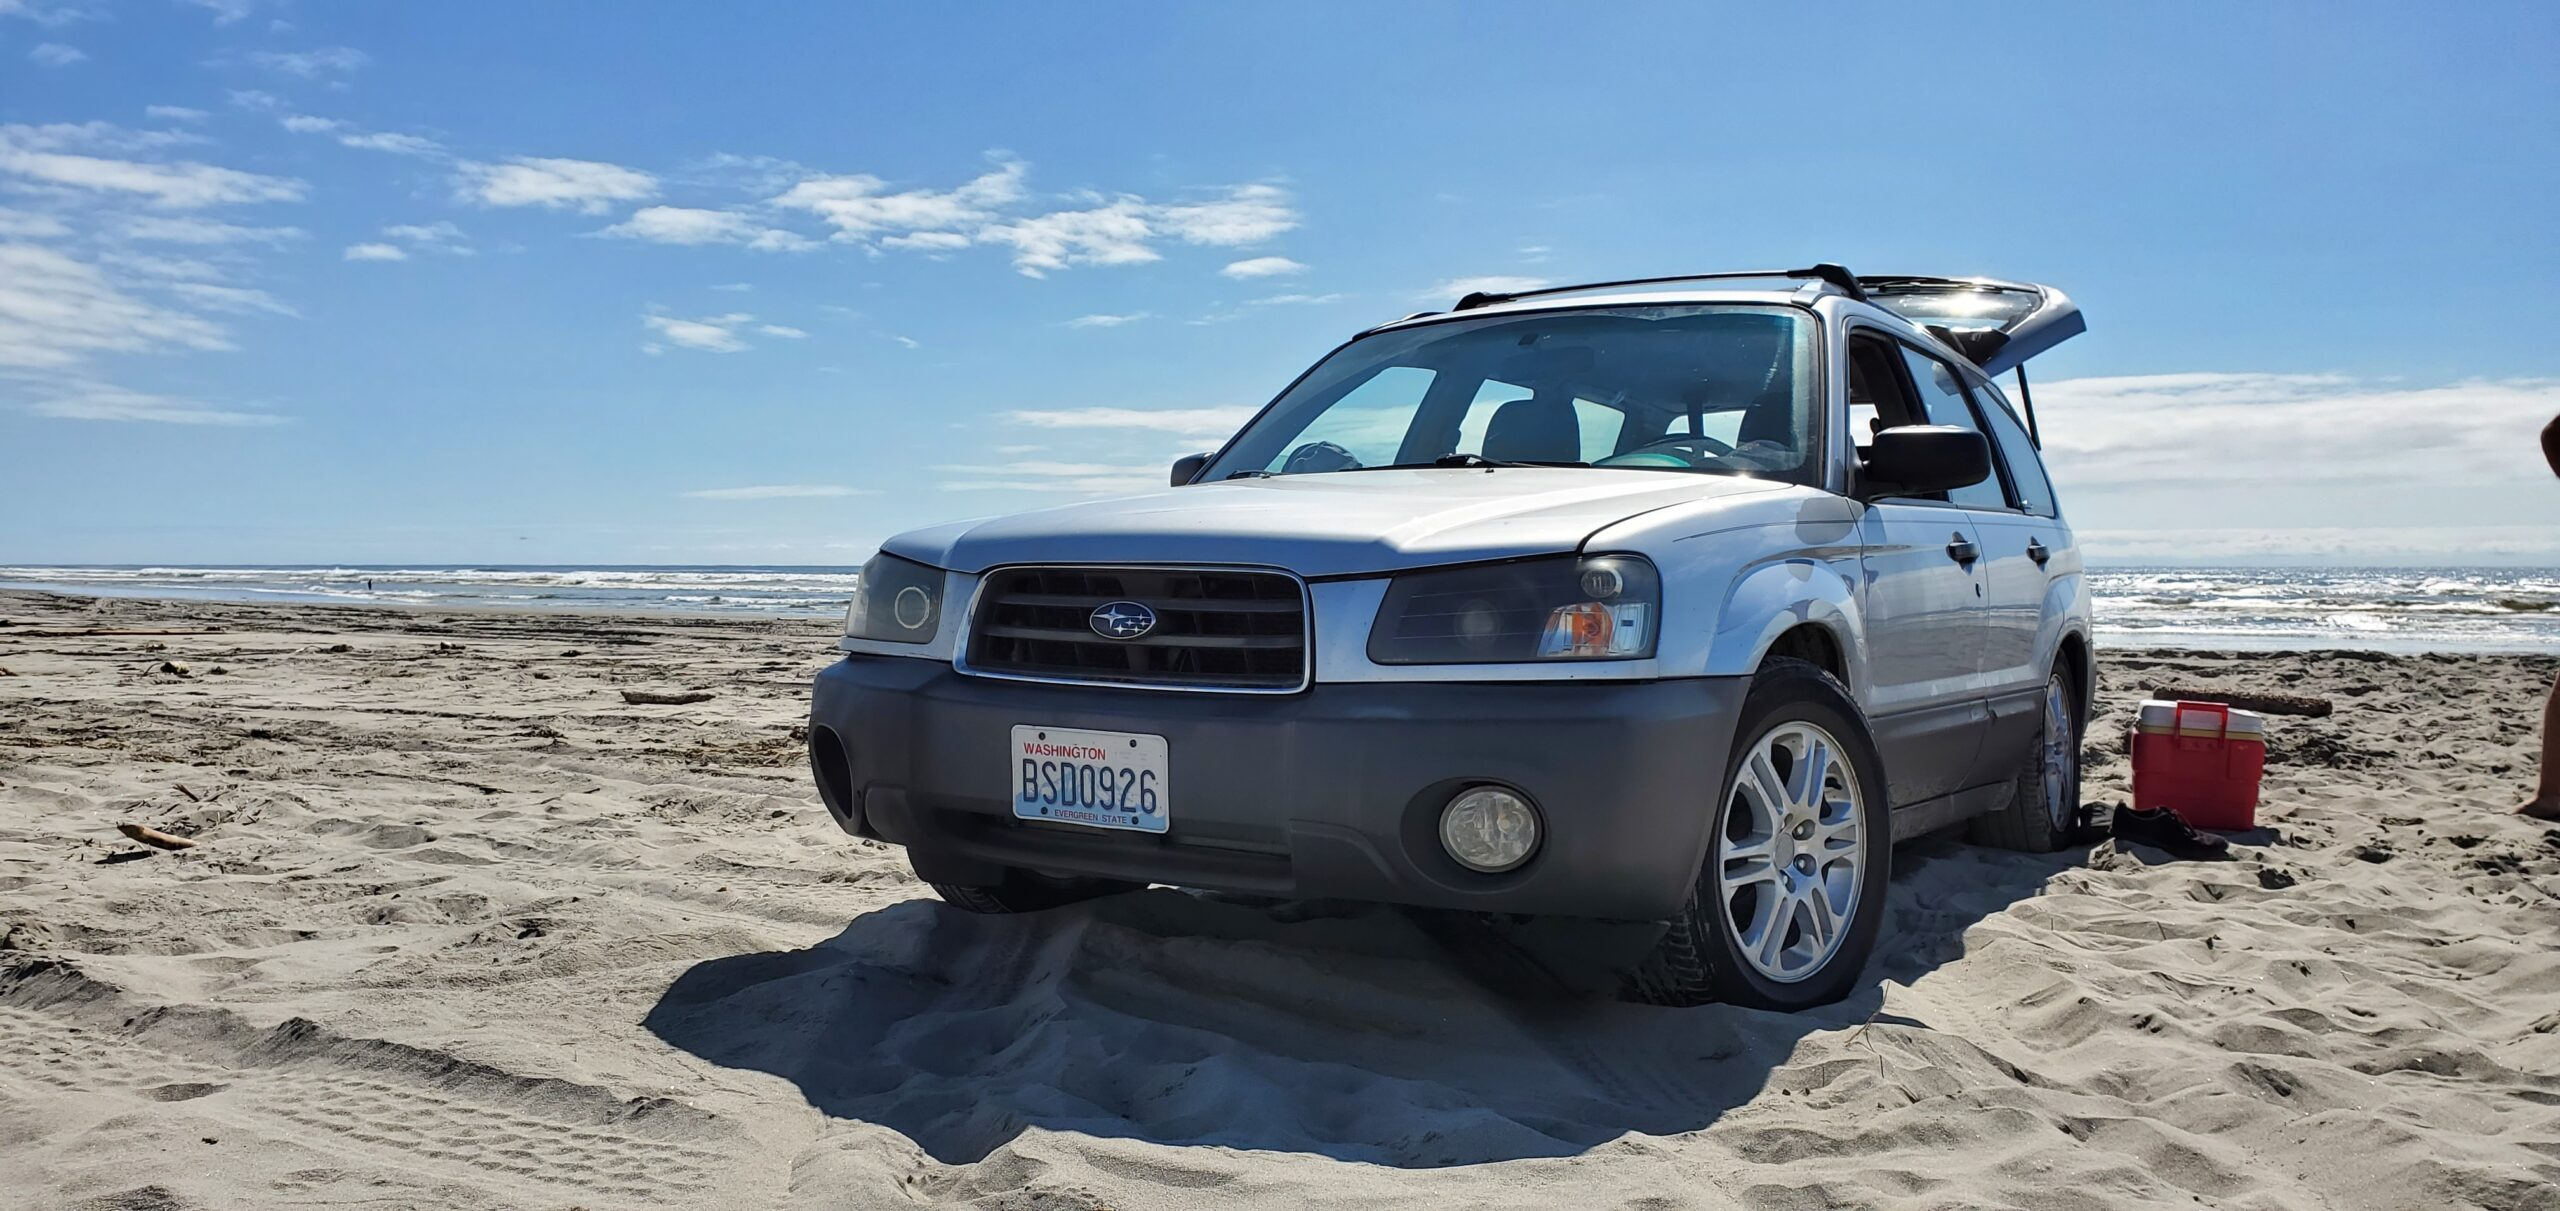 lowered subaru forester on the beach driving in the sand